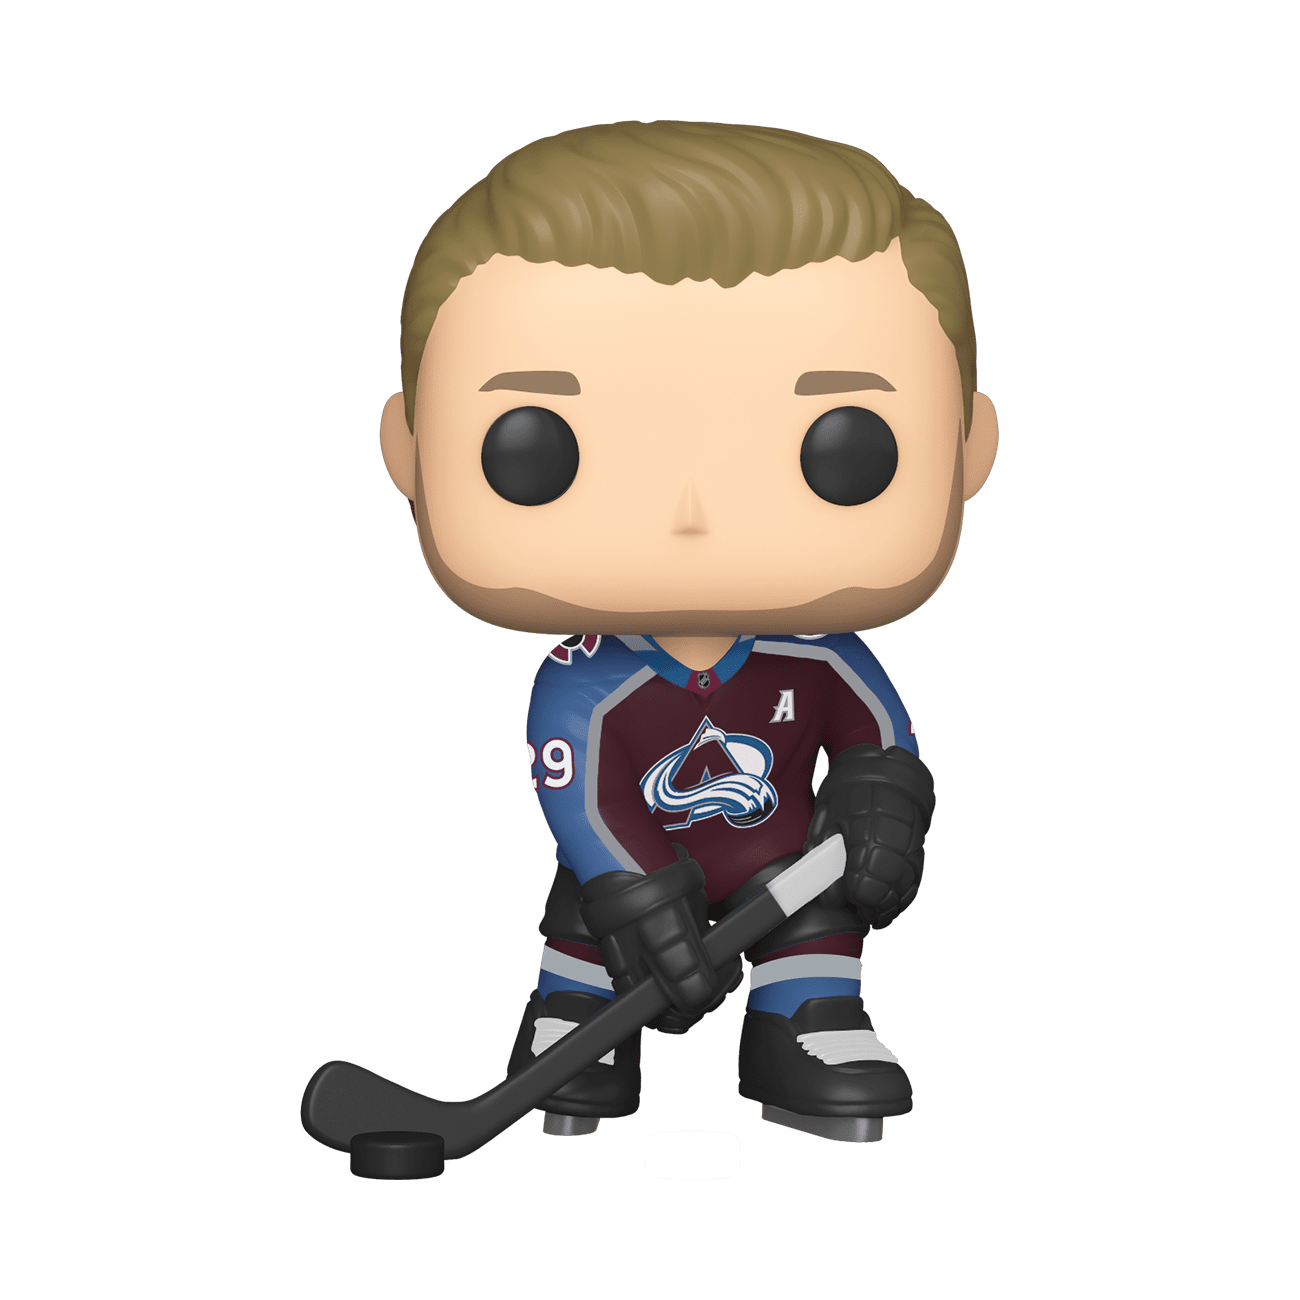 44113_NHL_Nathan_Avalanche_POP_GLAM-WEB.png